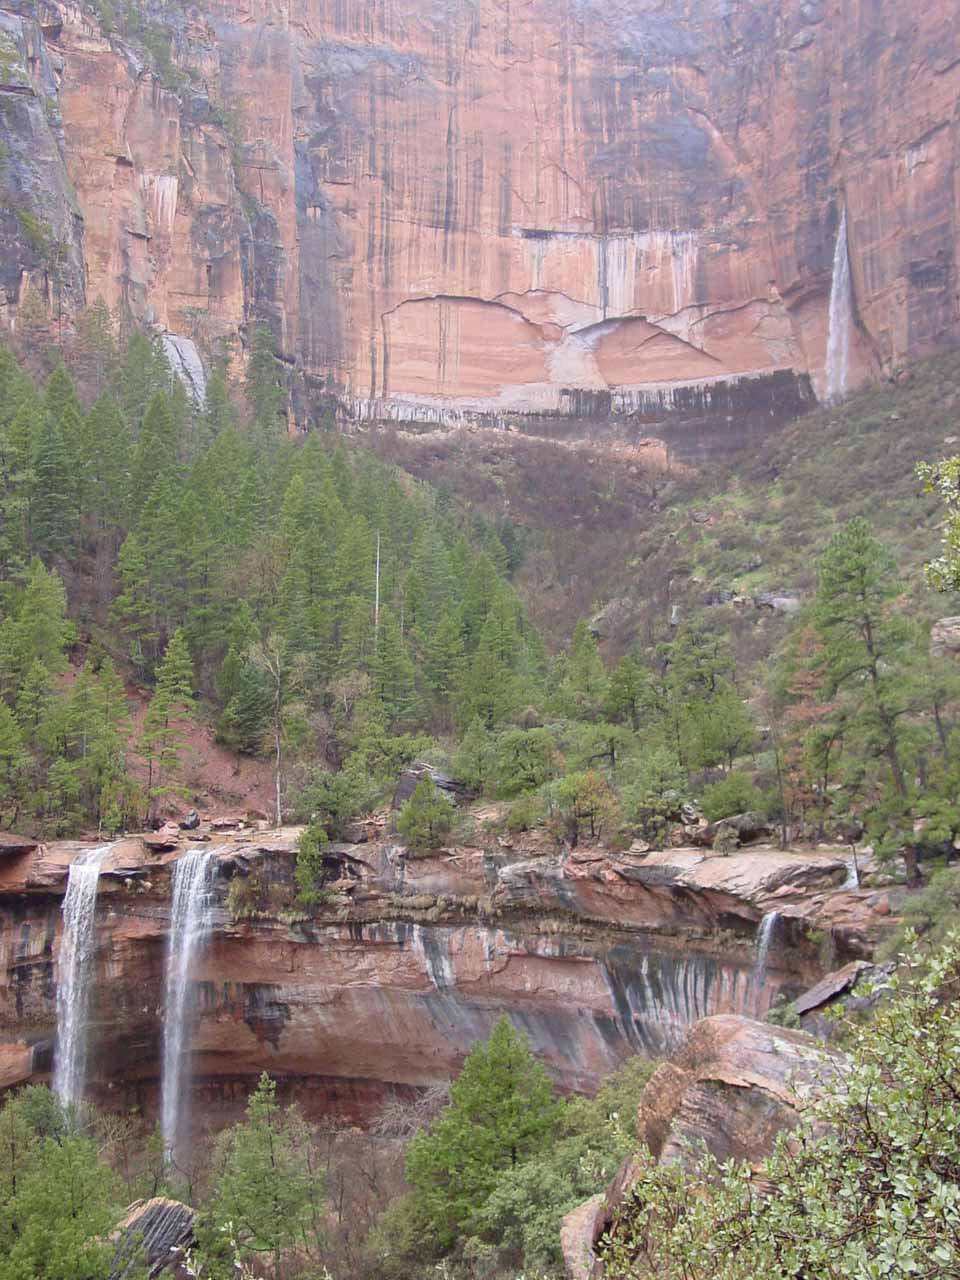 All the Emerald Pool waterfalls seen together